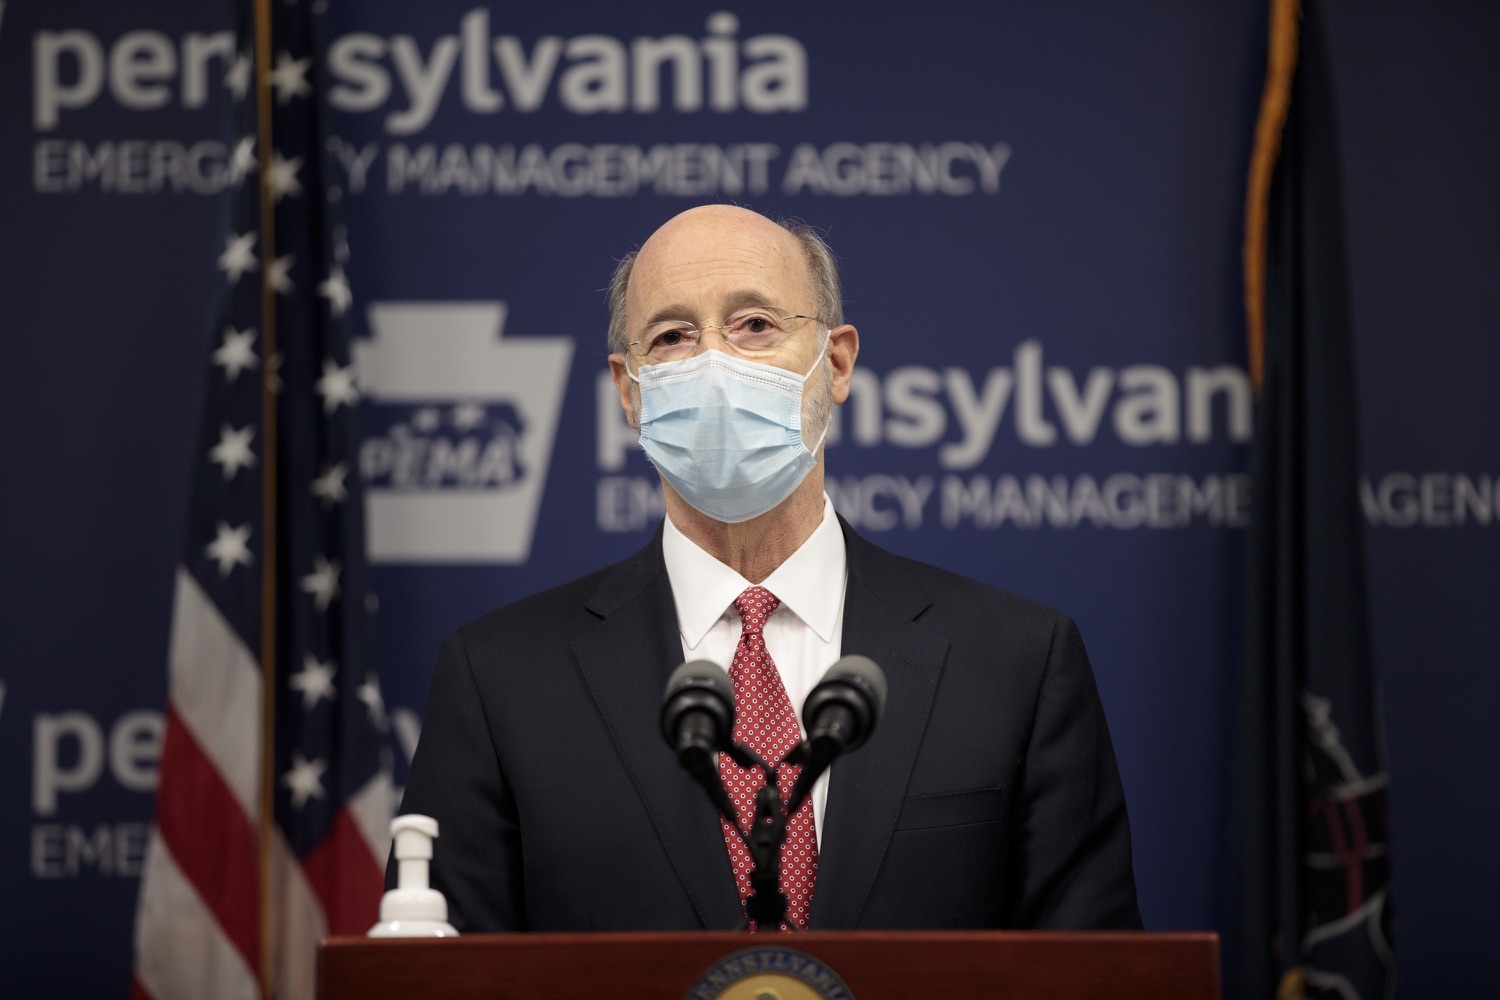 """<a href=""""https://filesource.wostreaming.net/commonwealthofpa/photo/18465_gov_electoralCollege_dz_13.jpg"""" target=""""_blank"""">⇣Download Photo<br></a>Pennsylvania Governor Tom Wolf speaking at the press conference.  With Congress preparing to count Electoral College votes today, Governor Tom Wolf was joined by Secretary of State Kathy Boockvar and Philadelphia City Commissioner Al Schmidt to emphasize that Pennsylvania had a free, fair and secure election. All efforts by Congressional Republicans to overthrow the election results and subvert the will of the voters are disgraceful and must be rejected. Harrisburg, PA  January 6, 2021"""